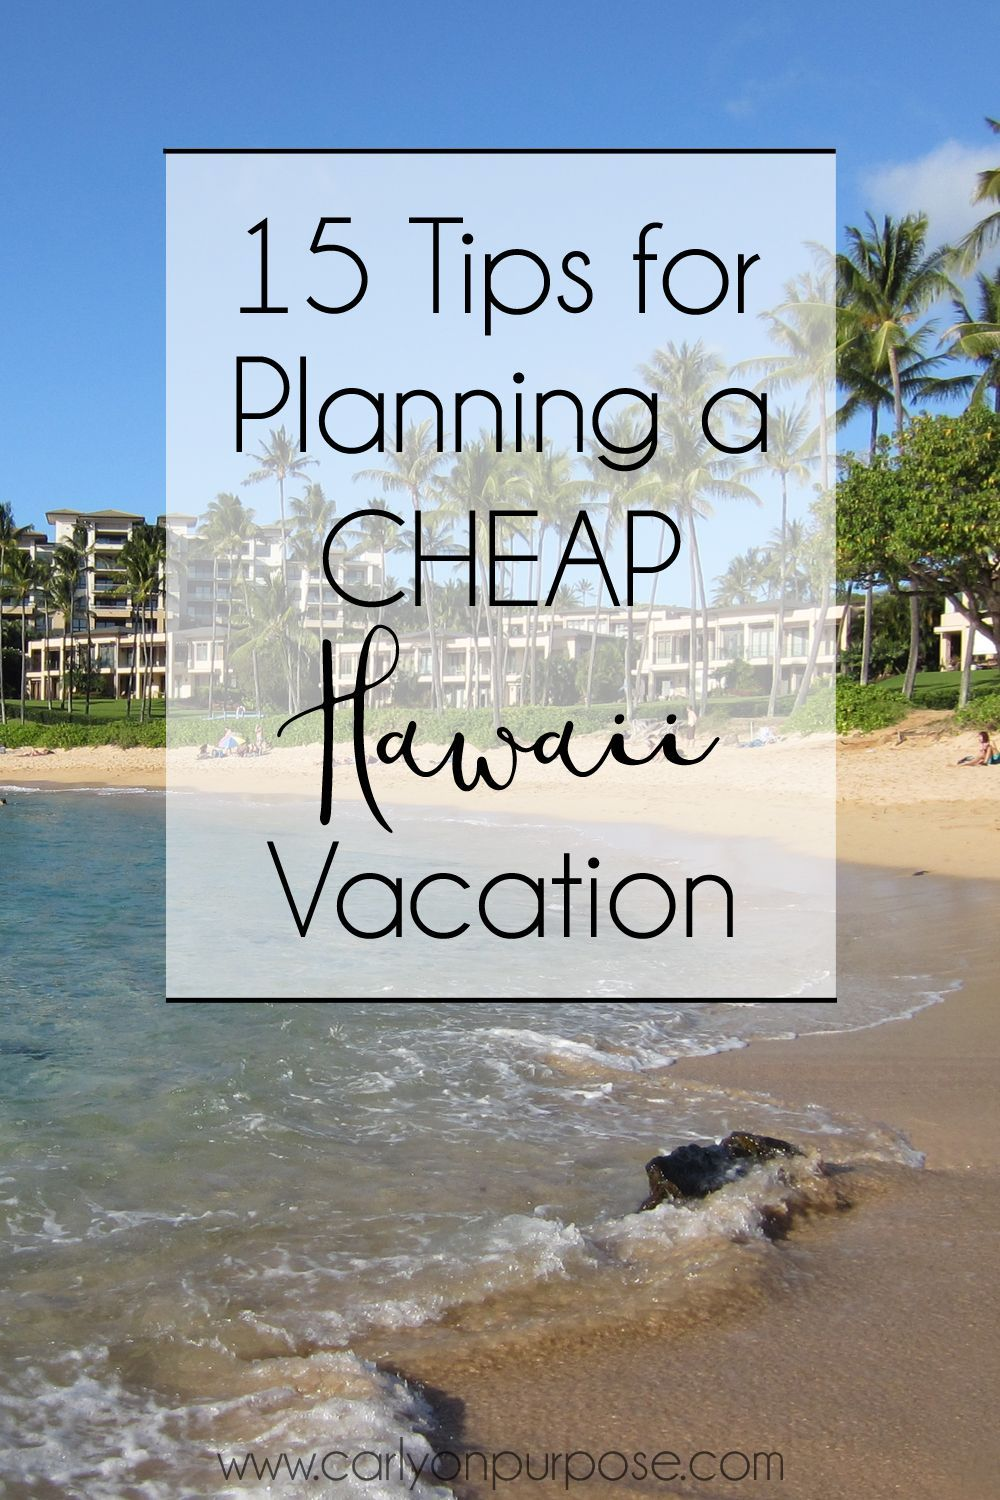 Ways to Have a Budget Hawaii Vacation I used to think Hawaii was an expensive destination. Not anymore! In 2015 & 2016 we visited for 10 days each time, for LESS than $3000!I used to think Hawaii was an expensive destination. Not anymore! In 2015 & 2016 we visited for 10 days each time, for LESS than $3000!